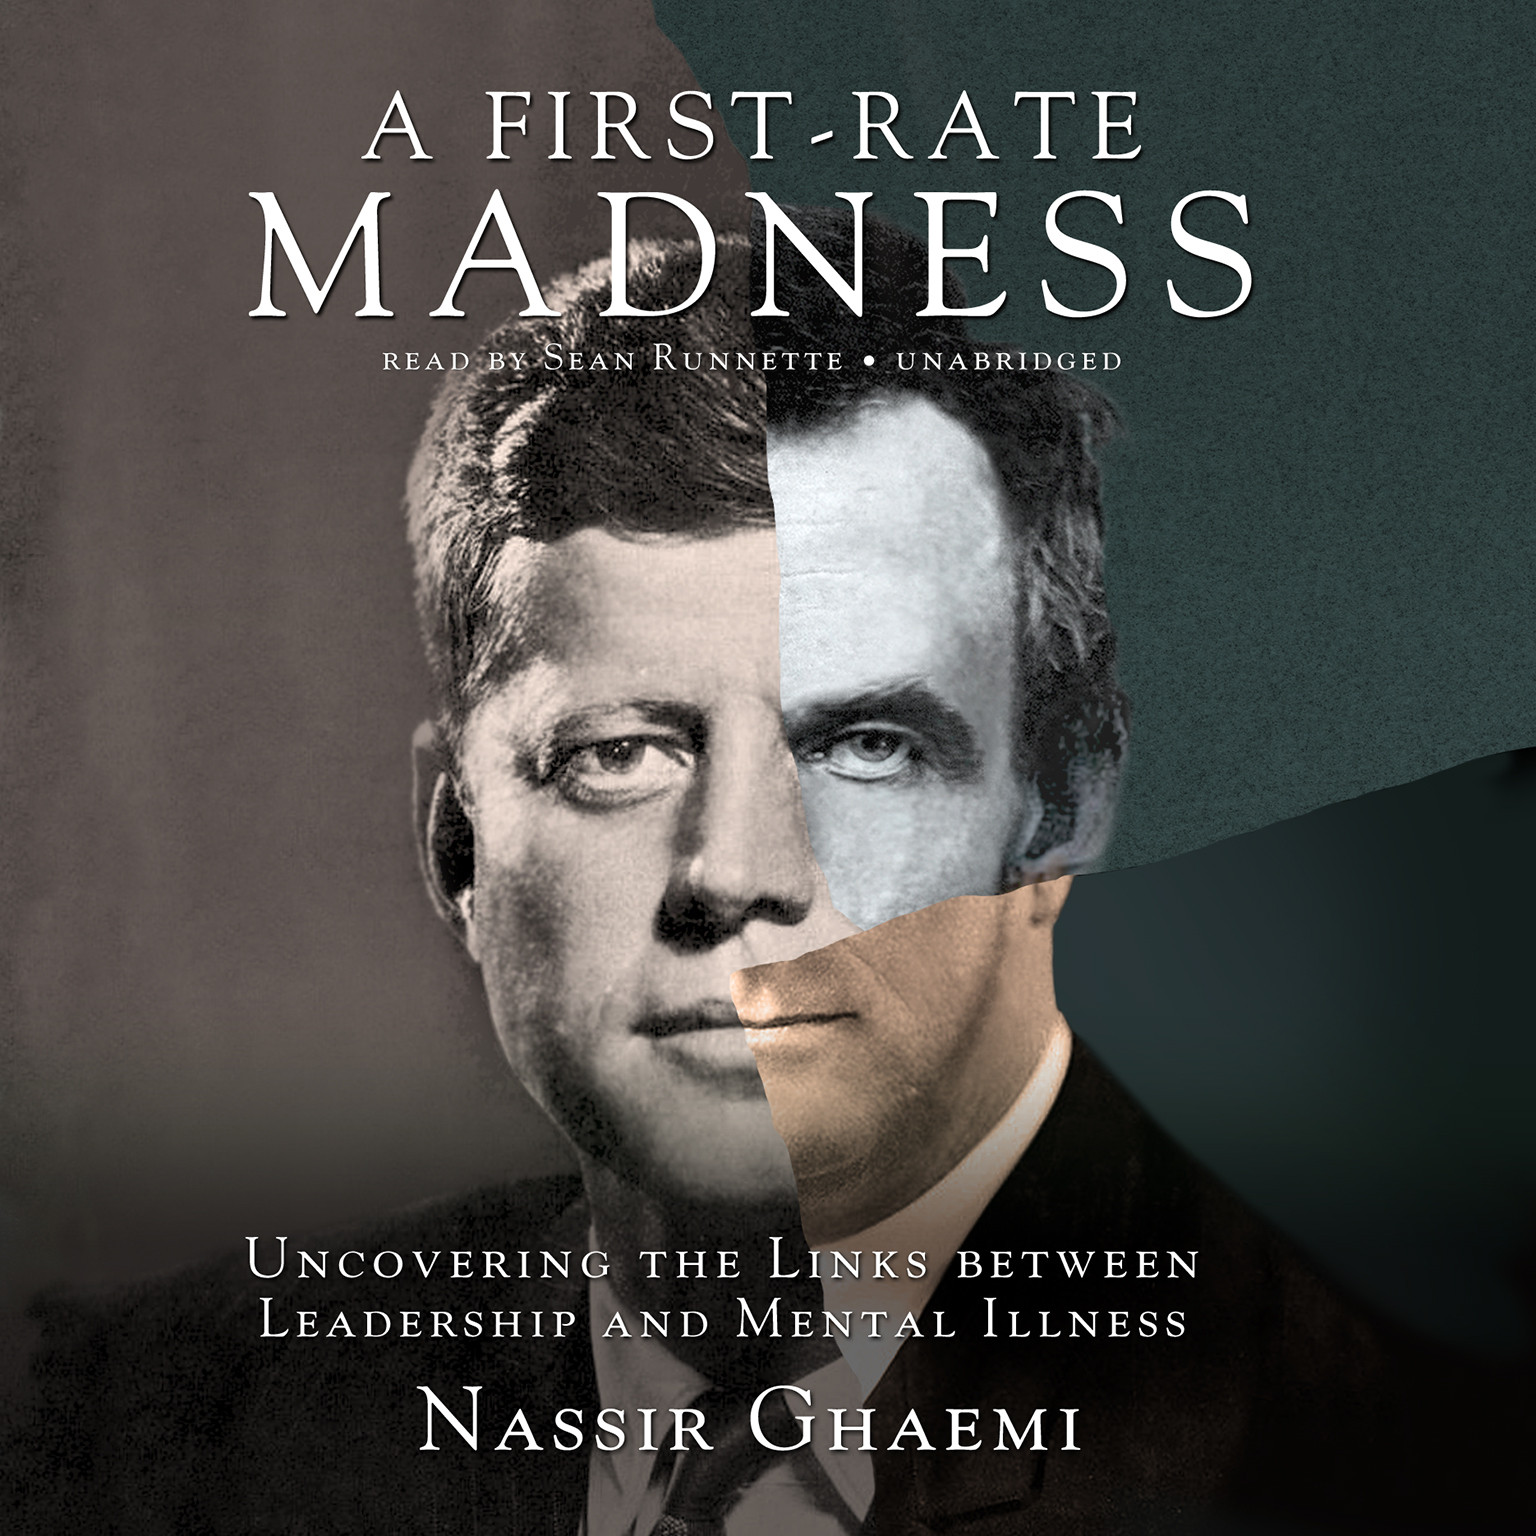 Printable A First-Rate Madness: Uncovering the Links between Leadership and Mental Illness Audiobook Cover Art